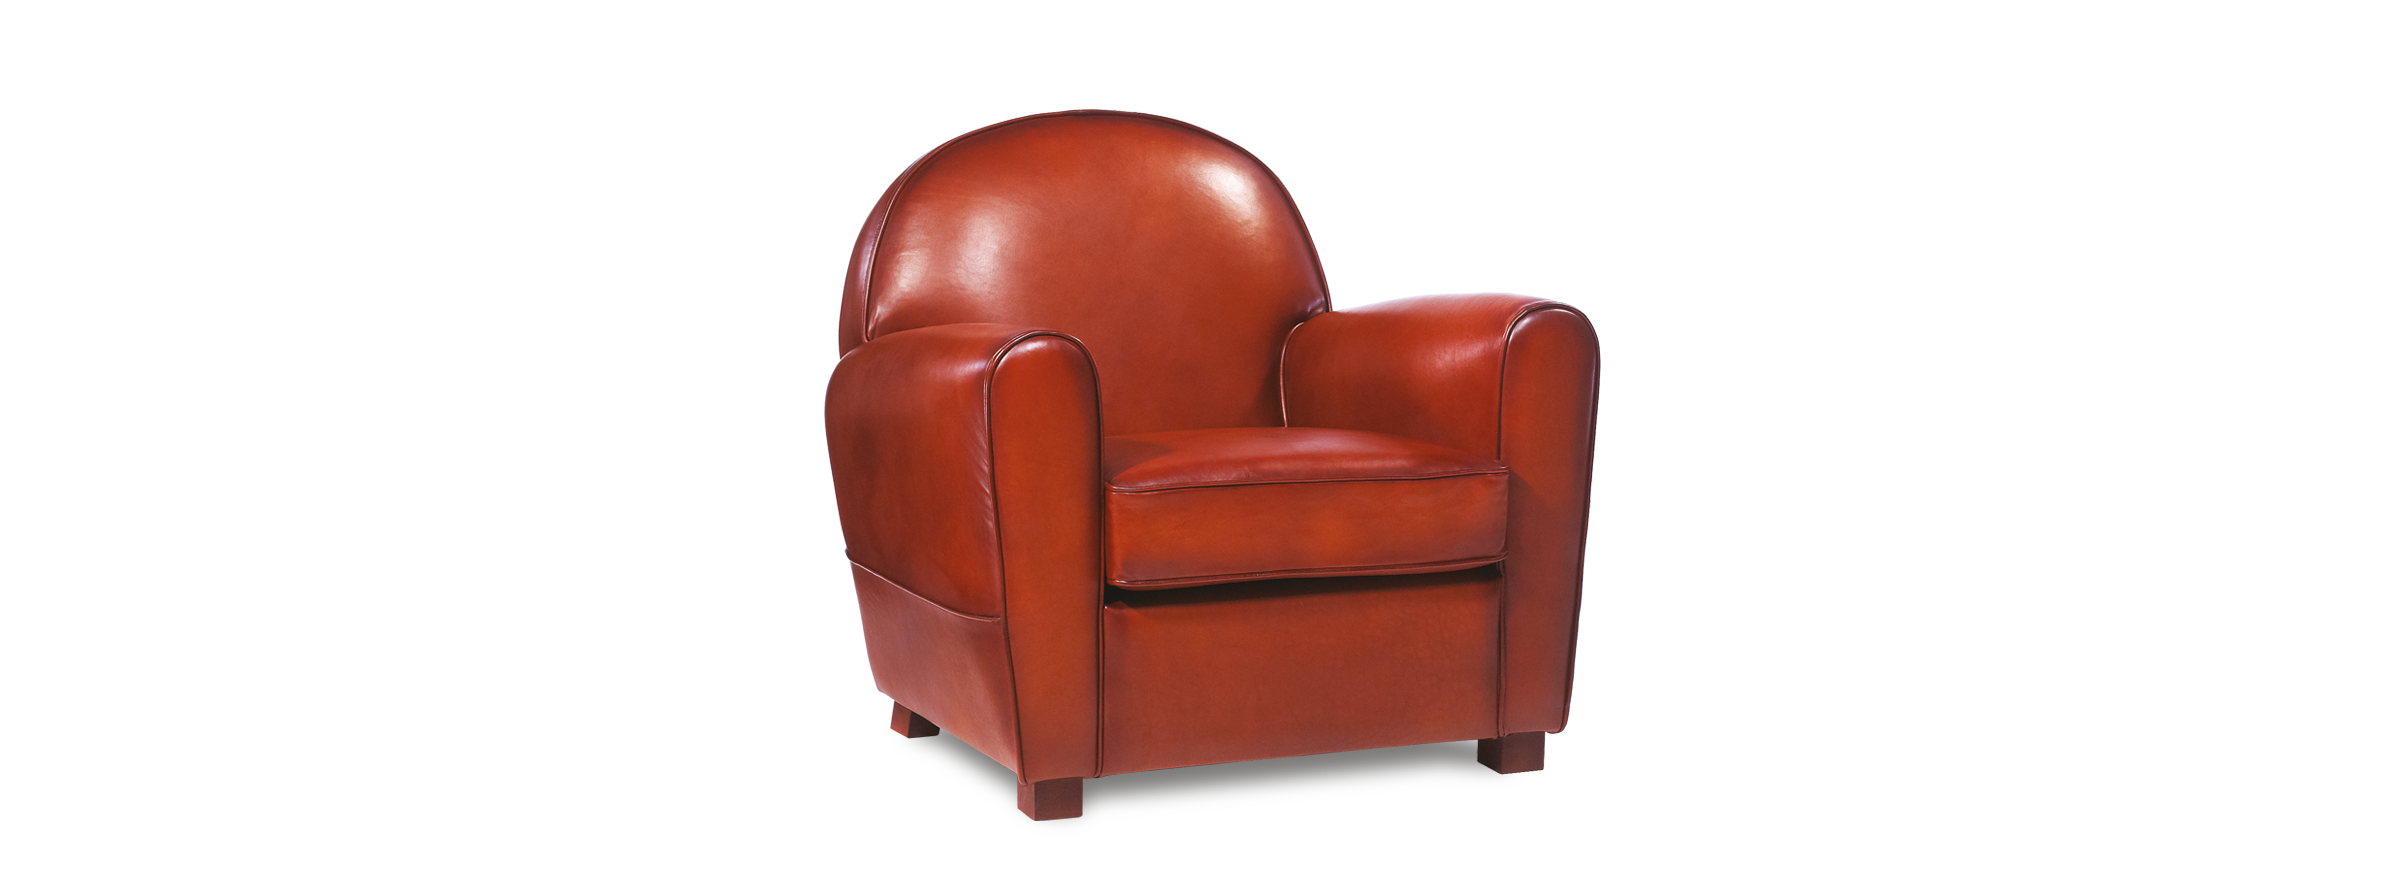 Neology Fauteuils Relax Clayton Neology